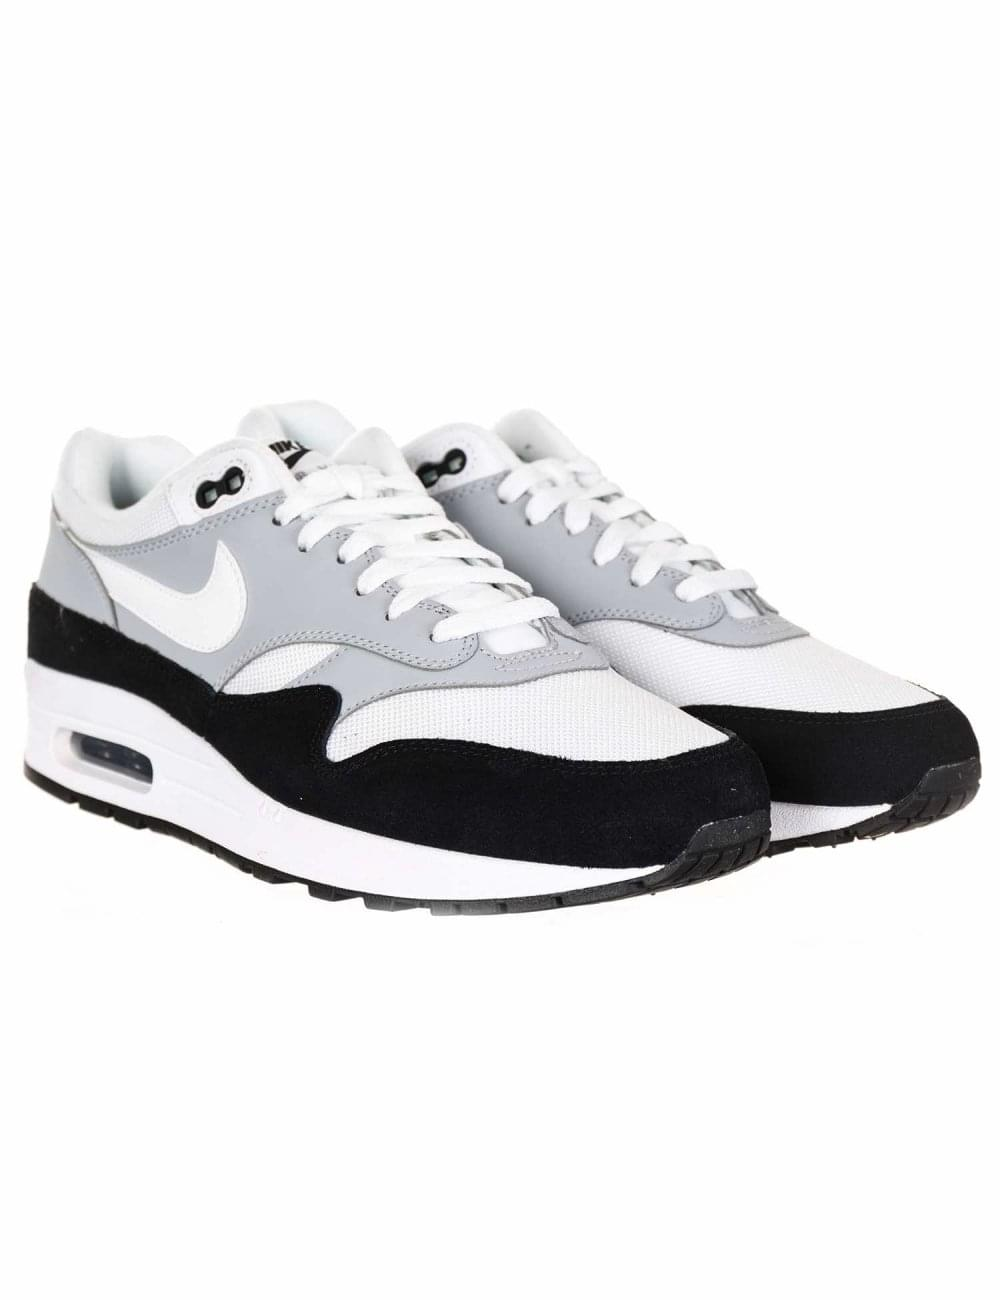 finest selection 33656 9f7d8 Air Max 1 Trainers - Wolf Grey Black